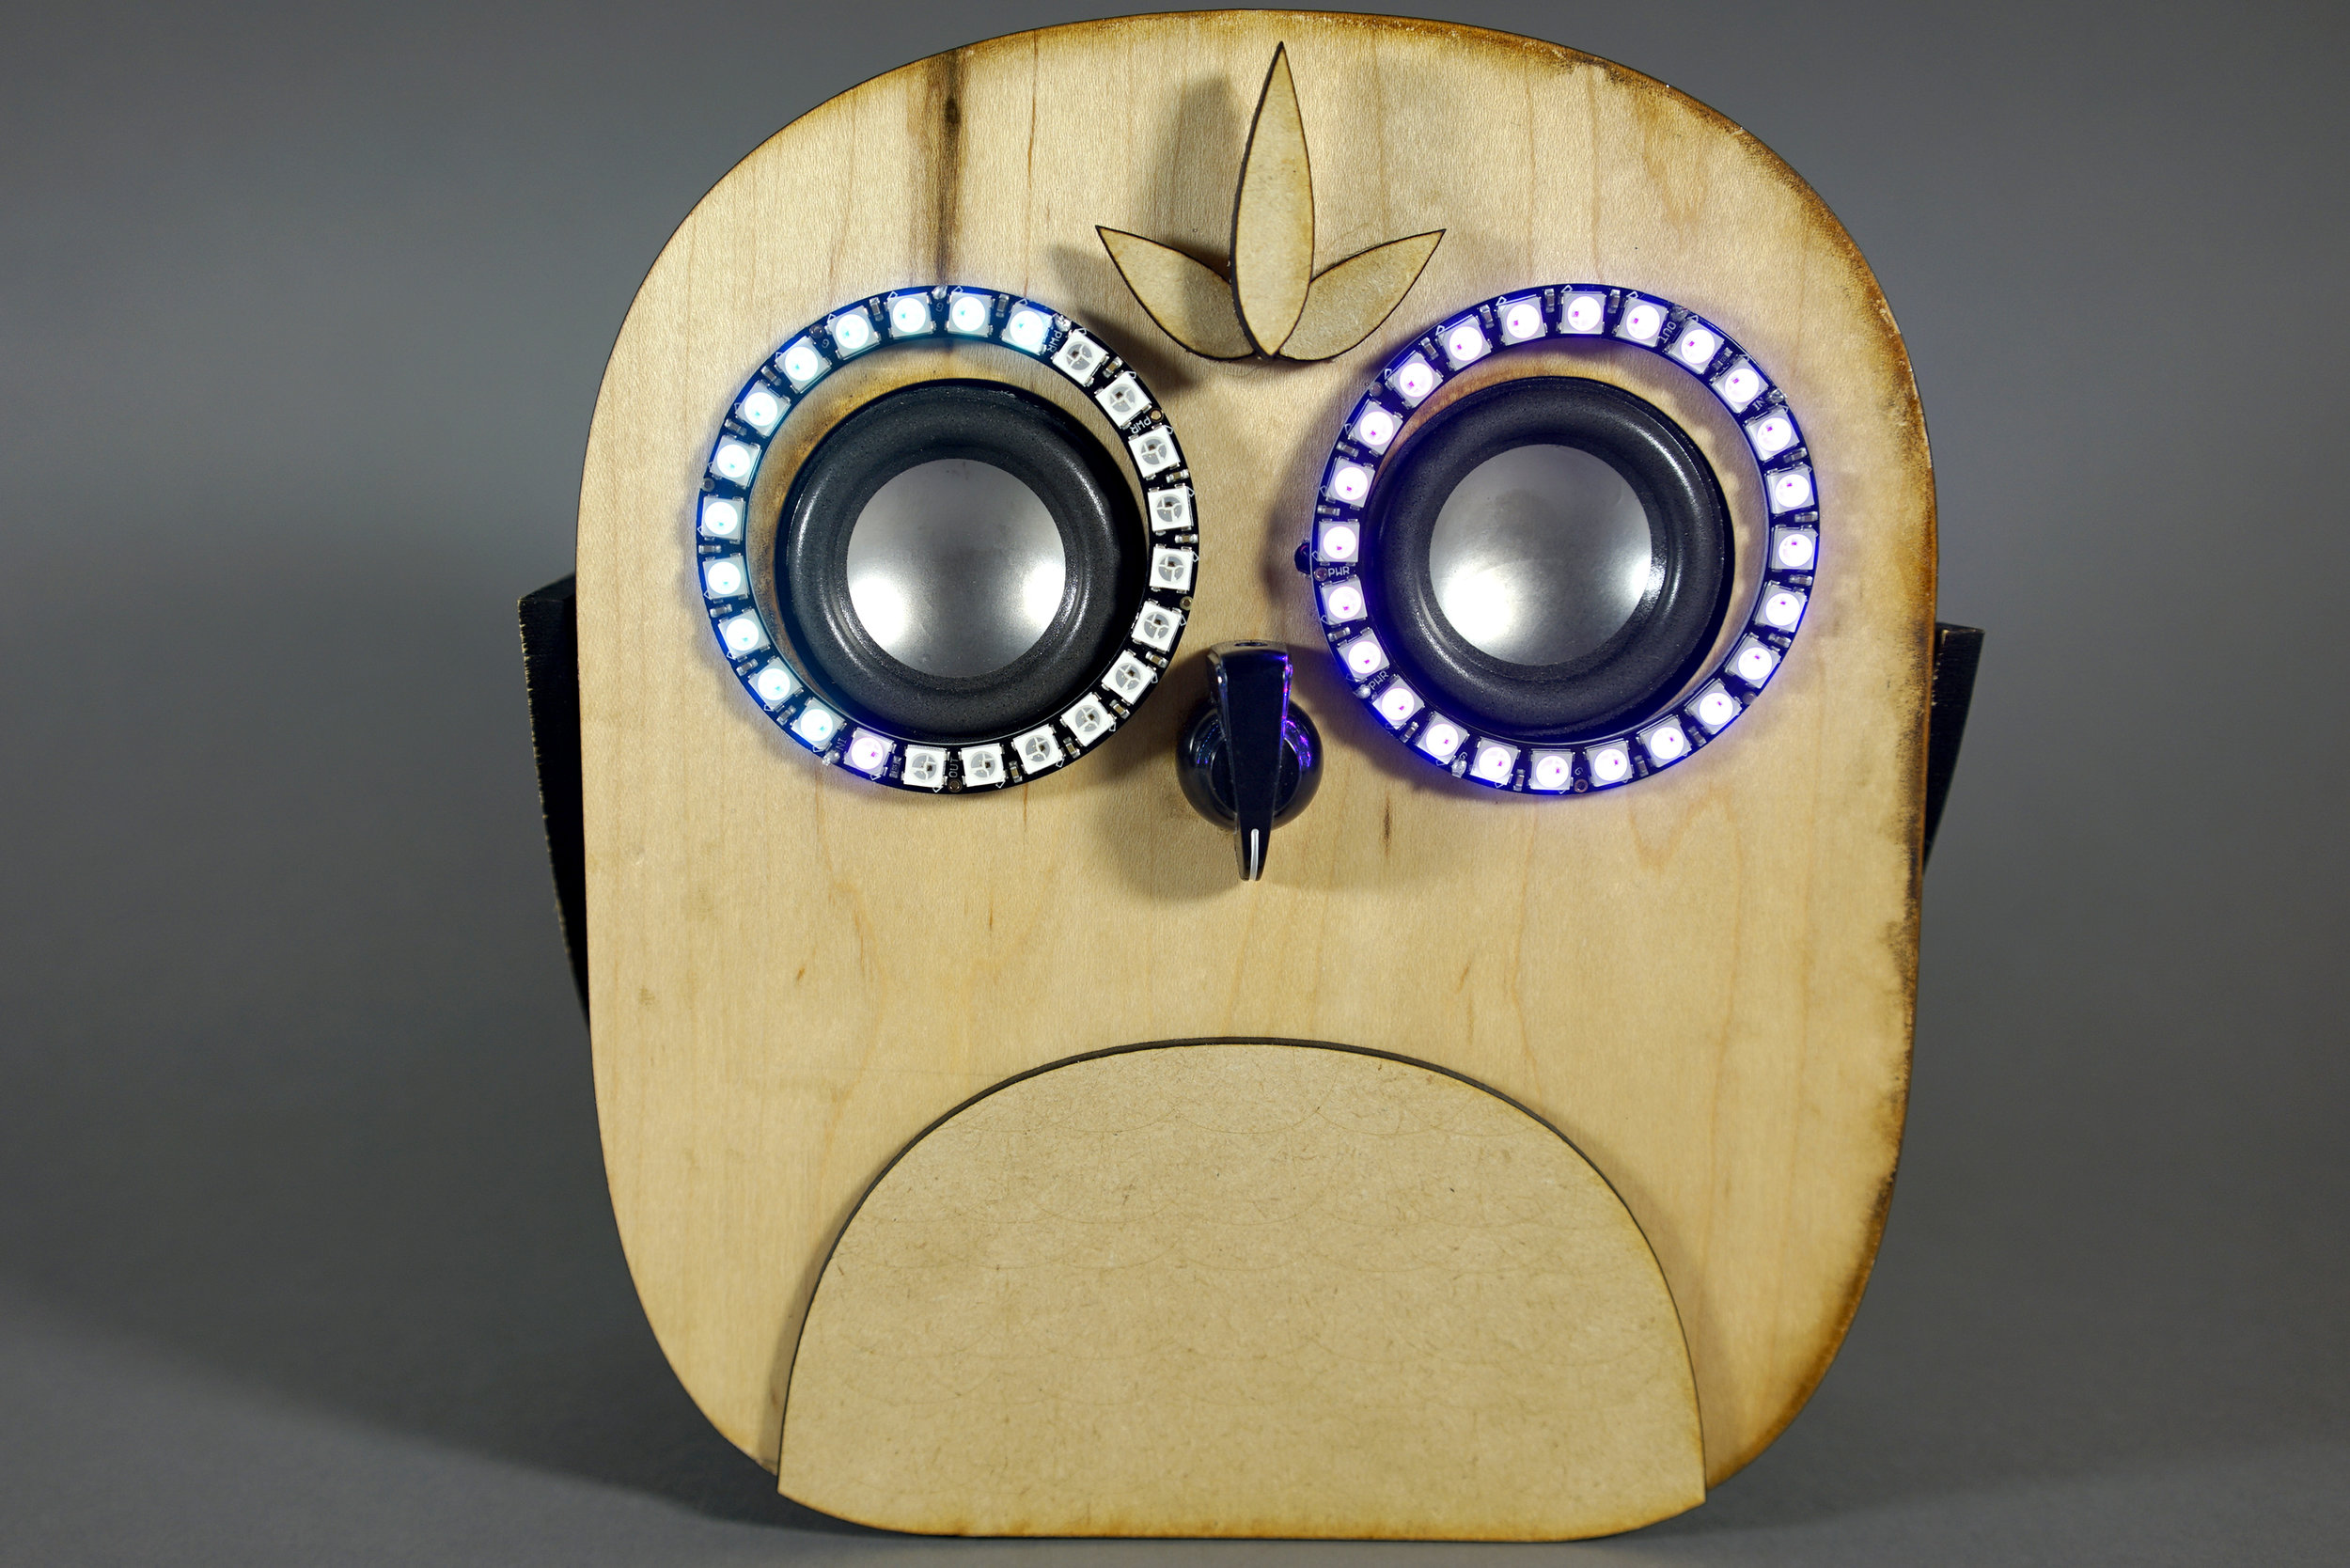 Jasmine's owl amplifier with bluetooth, beak as volume controller and audio-responsive eyes.